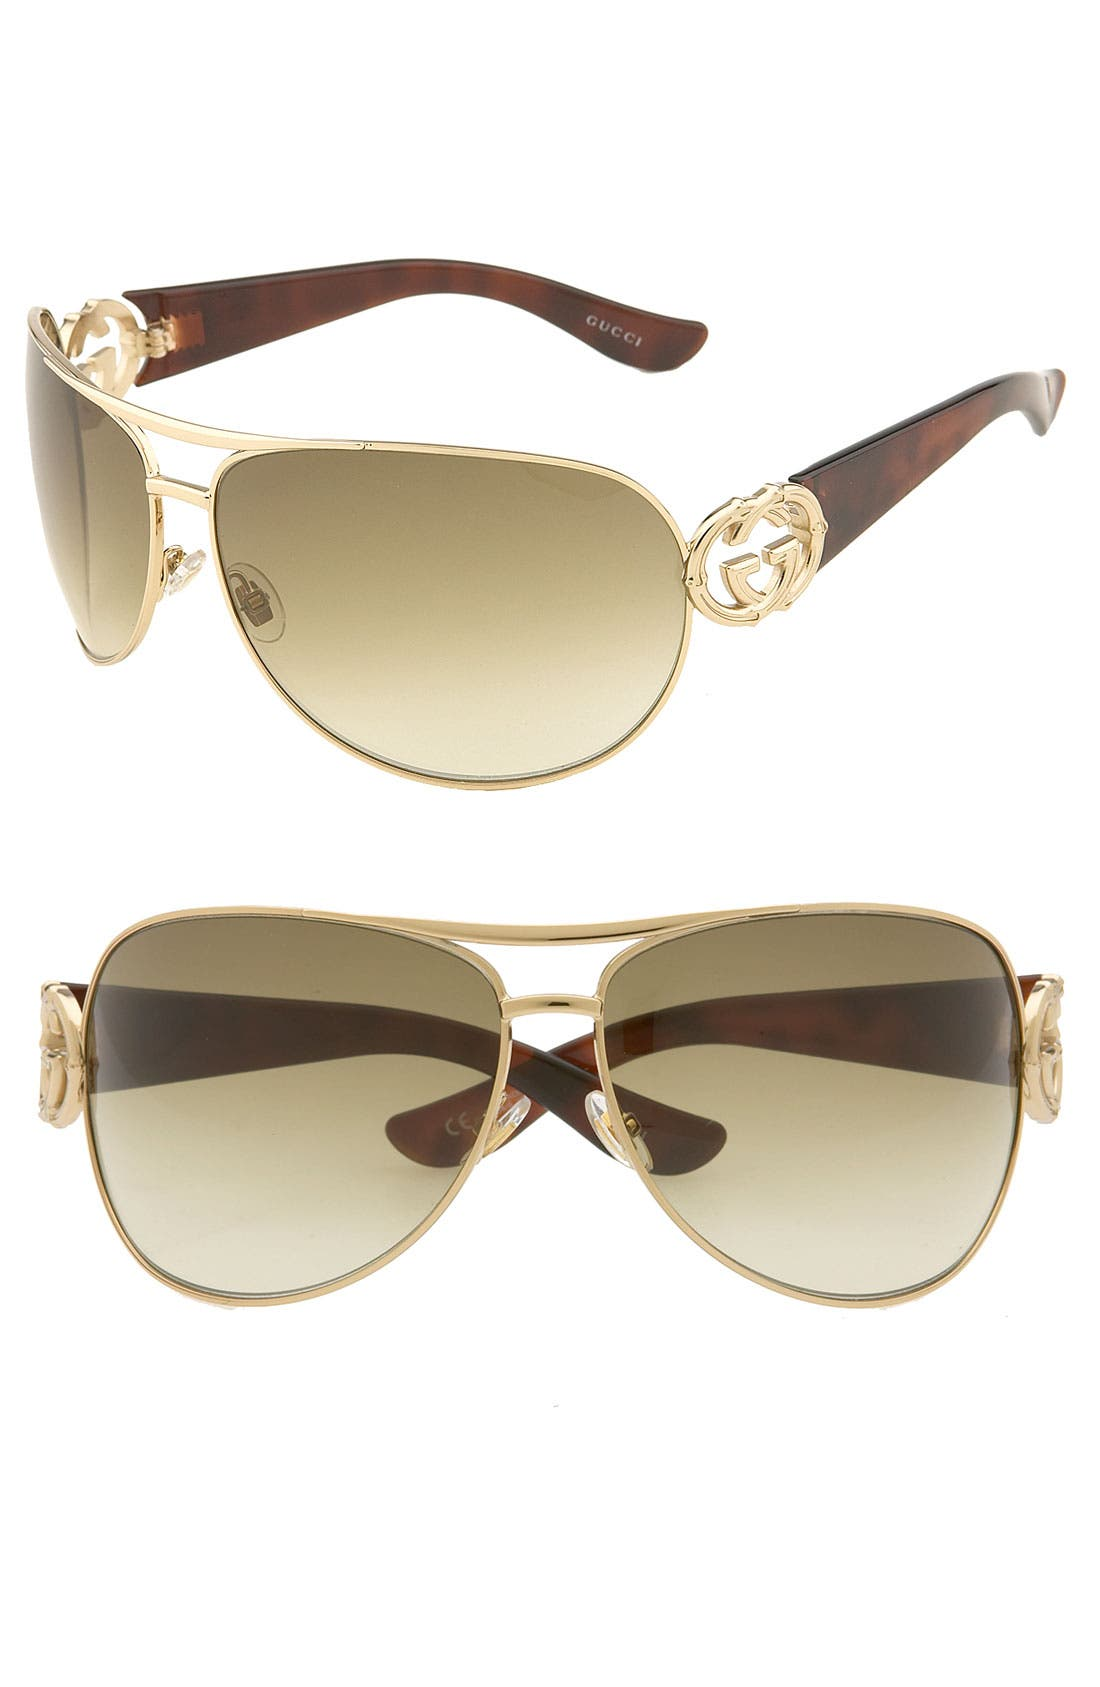 Alternate Image 1 Selected - Gucci Bamboo Logo Metal Aviator Sunglasses